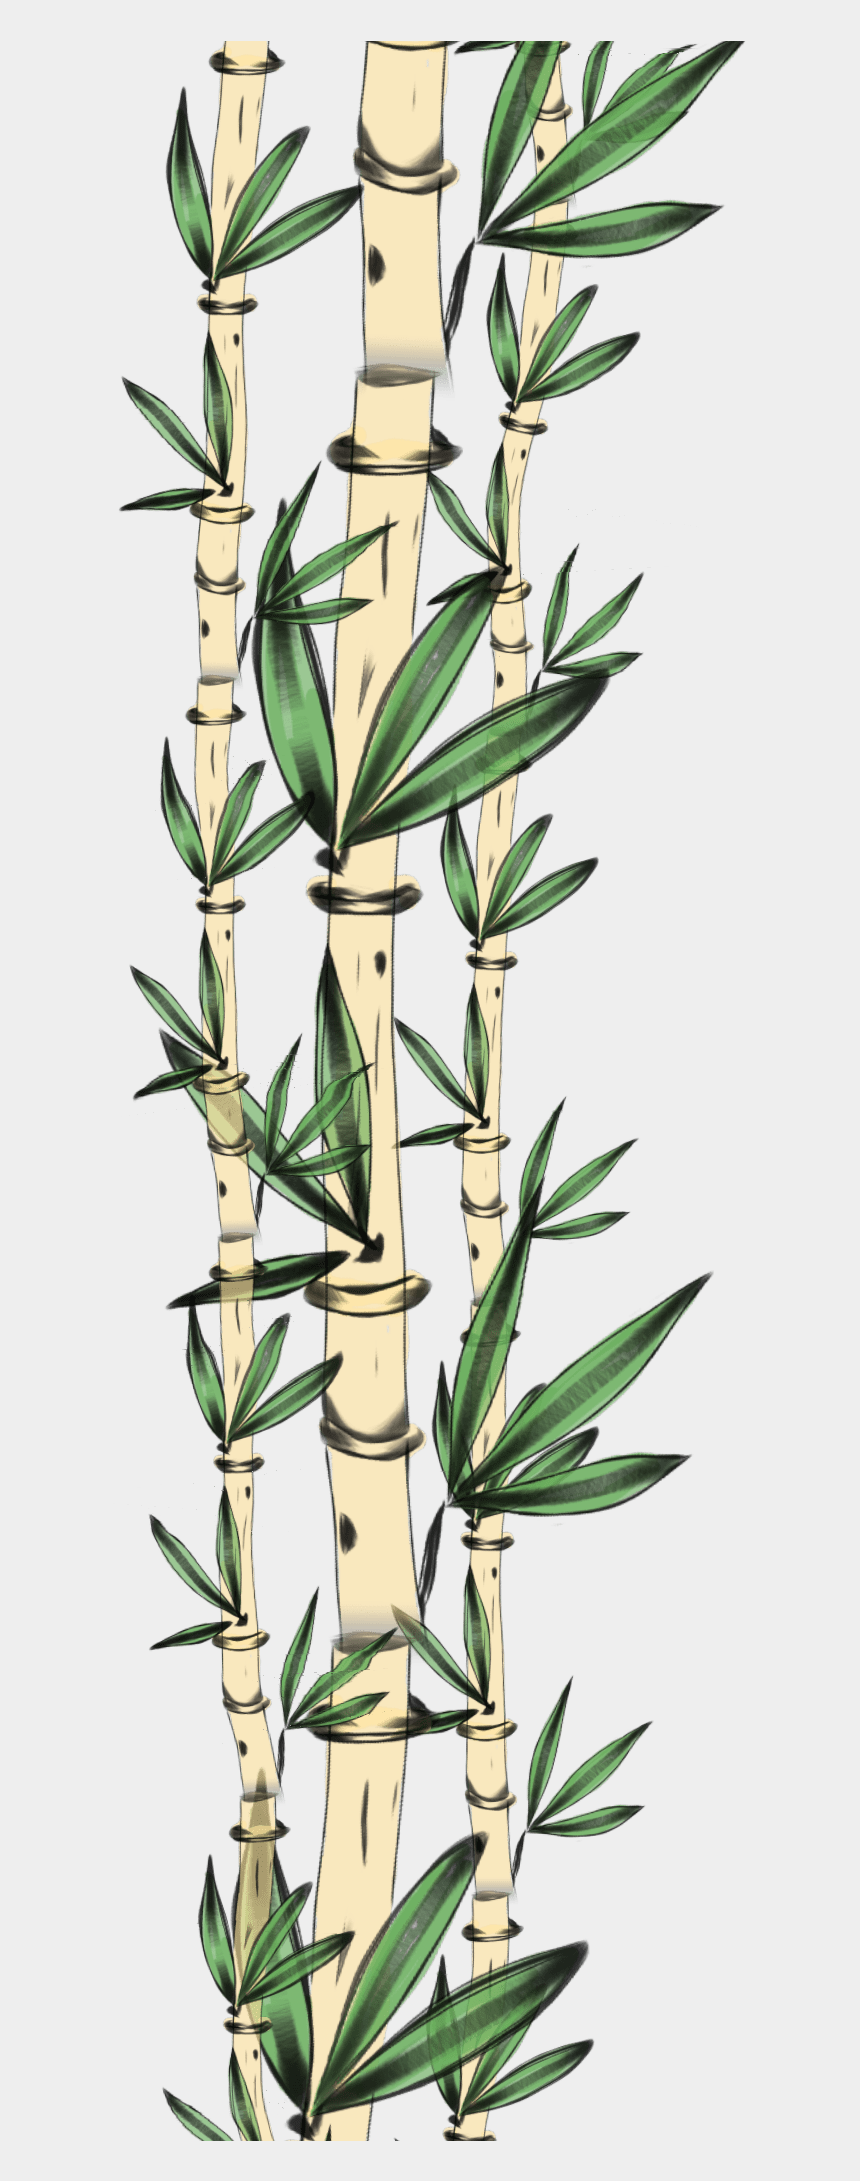 bamboo frame clipart, Cartoons - #freetoedit #bamboo #border - รีวิว ผง ขัด ฟัน ฟ ฟาง